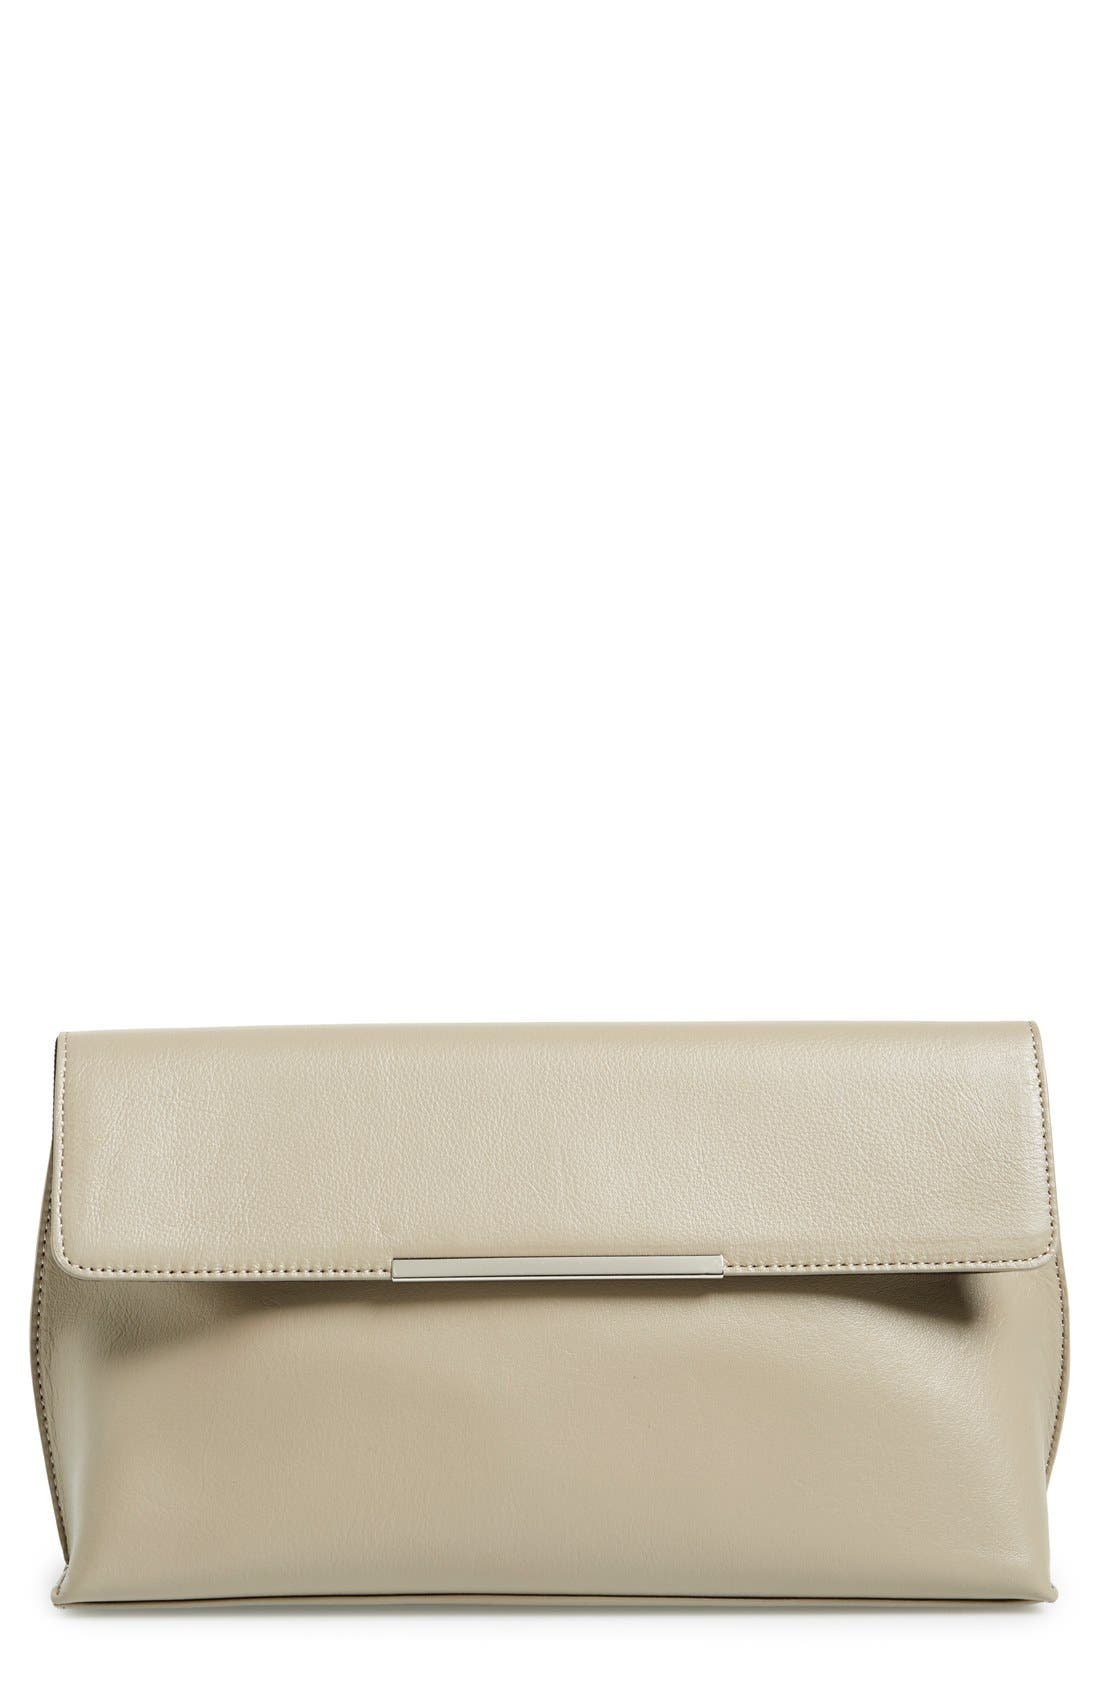 Halogen 'Magnolia' Leather Clutch,                             Main thumbnail 1, color,                             Tan Greige